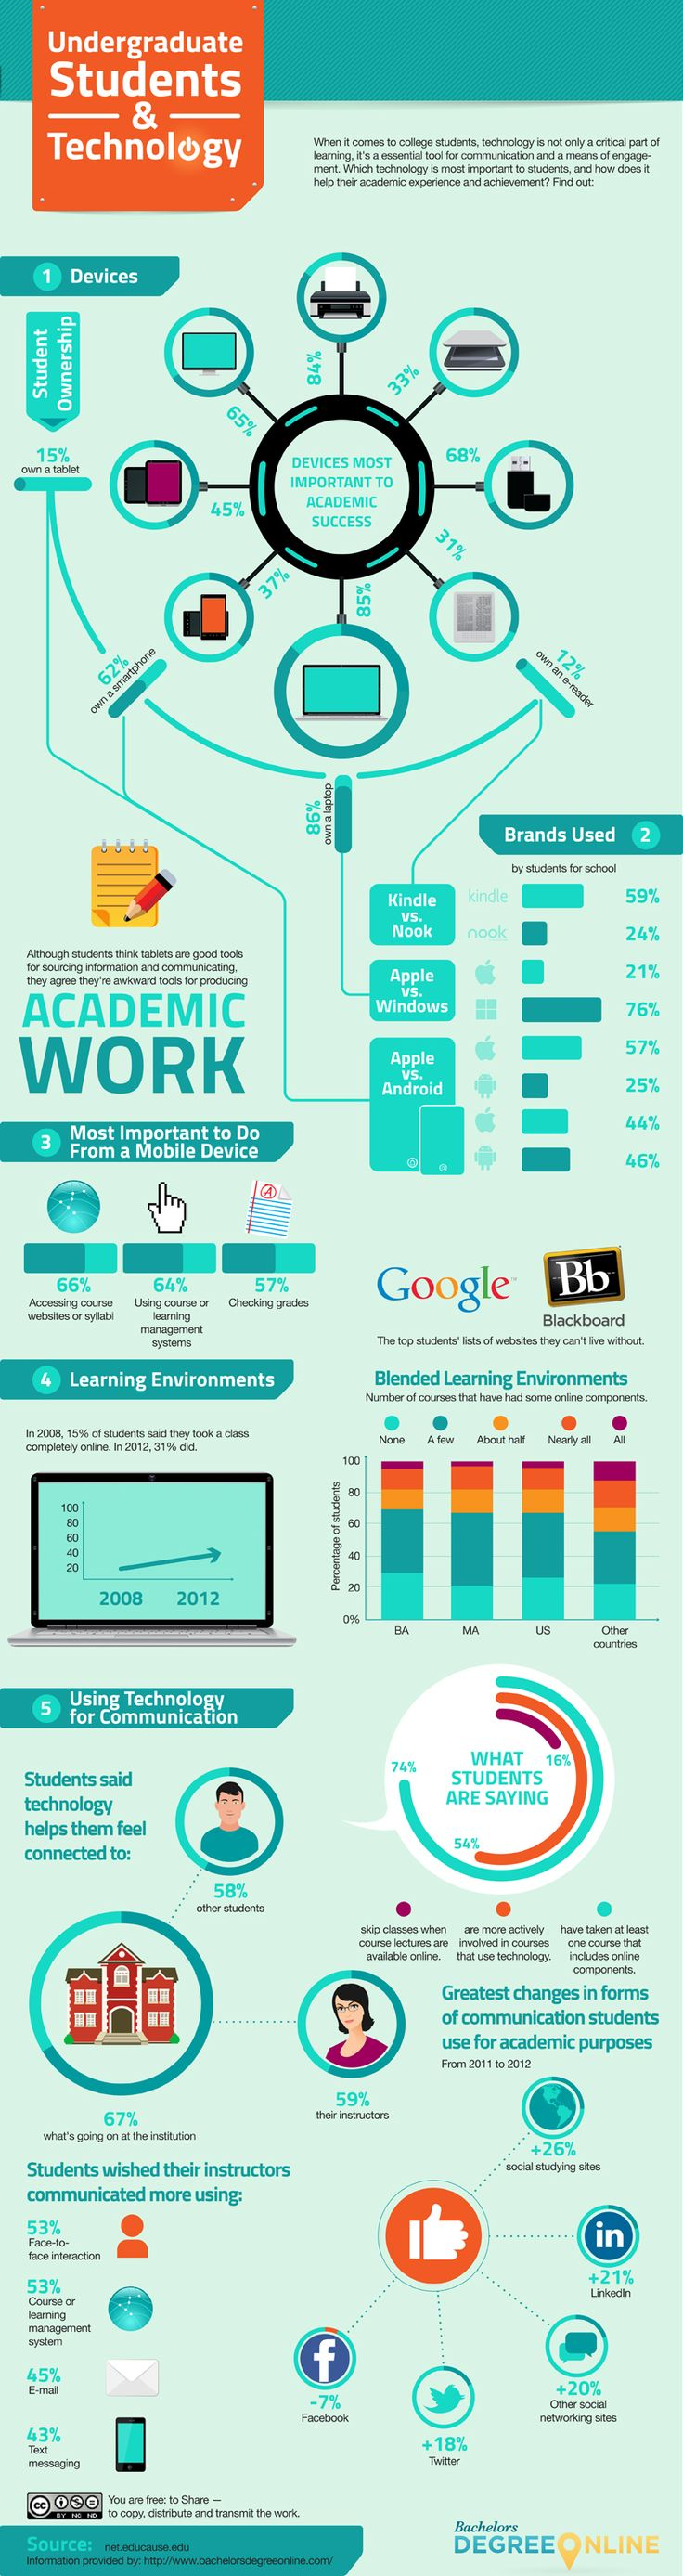 This info graphic is relatable for a college student such as myself.  This graphic shows the way students use their technology for educational purposes.  It also gives some different percentages for the amount of technology students have, such as whether or not they have an iPad or other tablet.  It gives a lot of positive statistics about the amount of online classes that people are taking.  In addition it shows that a lot of students are using to connect with their community.